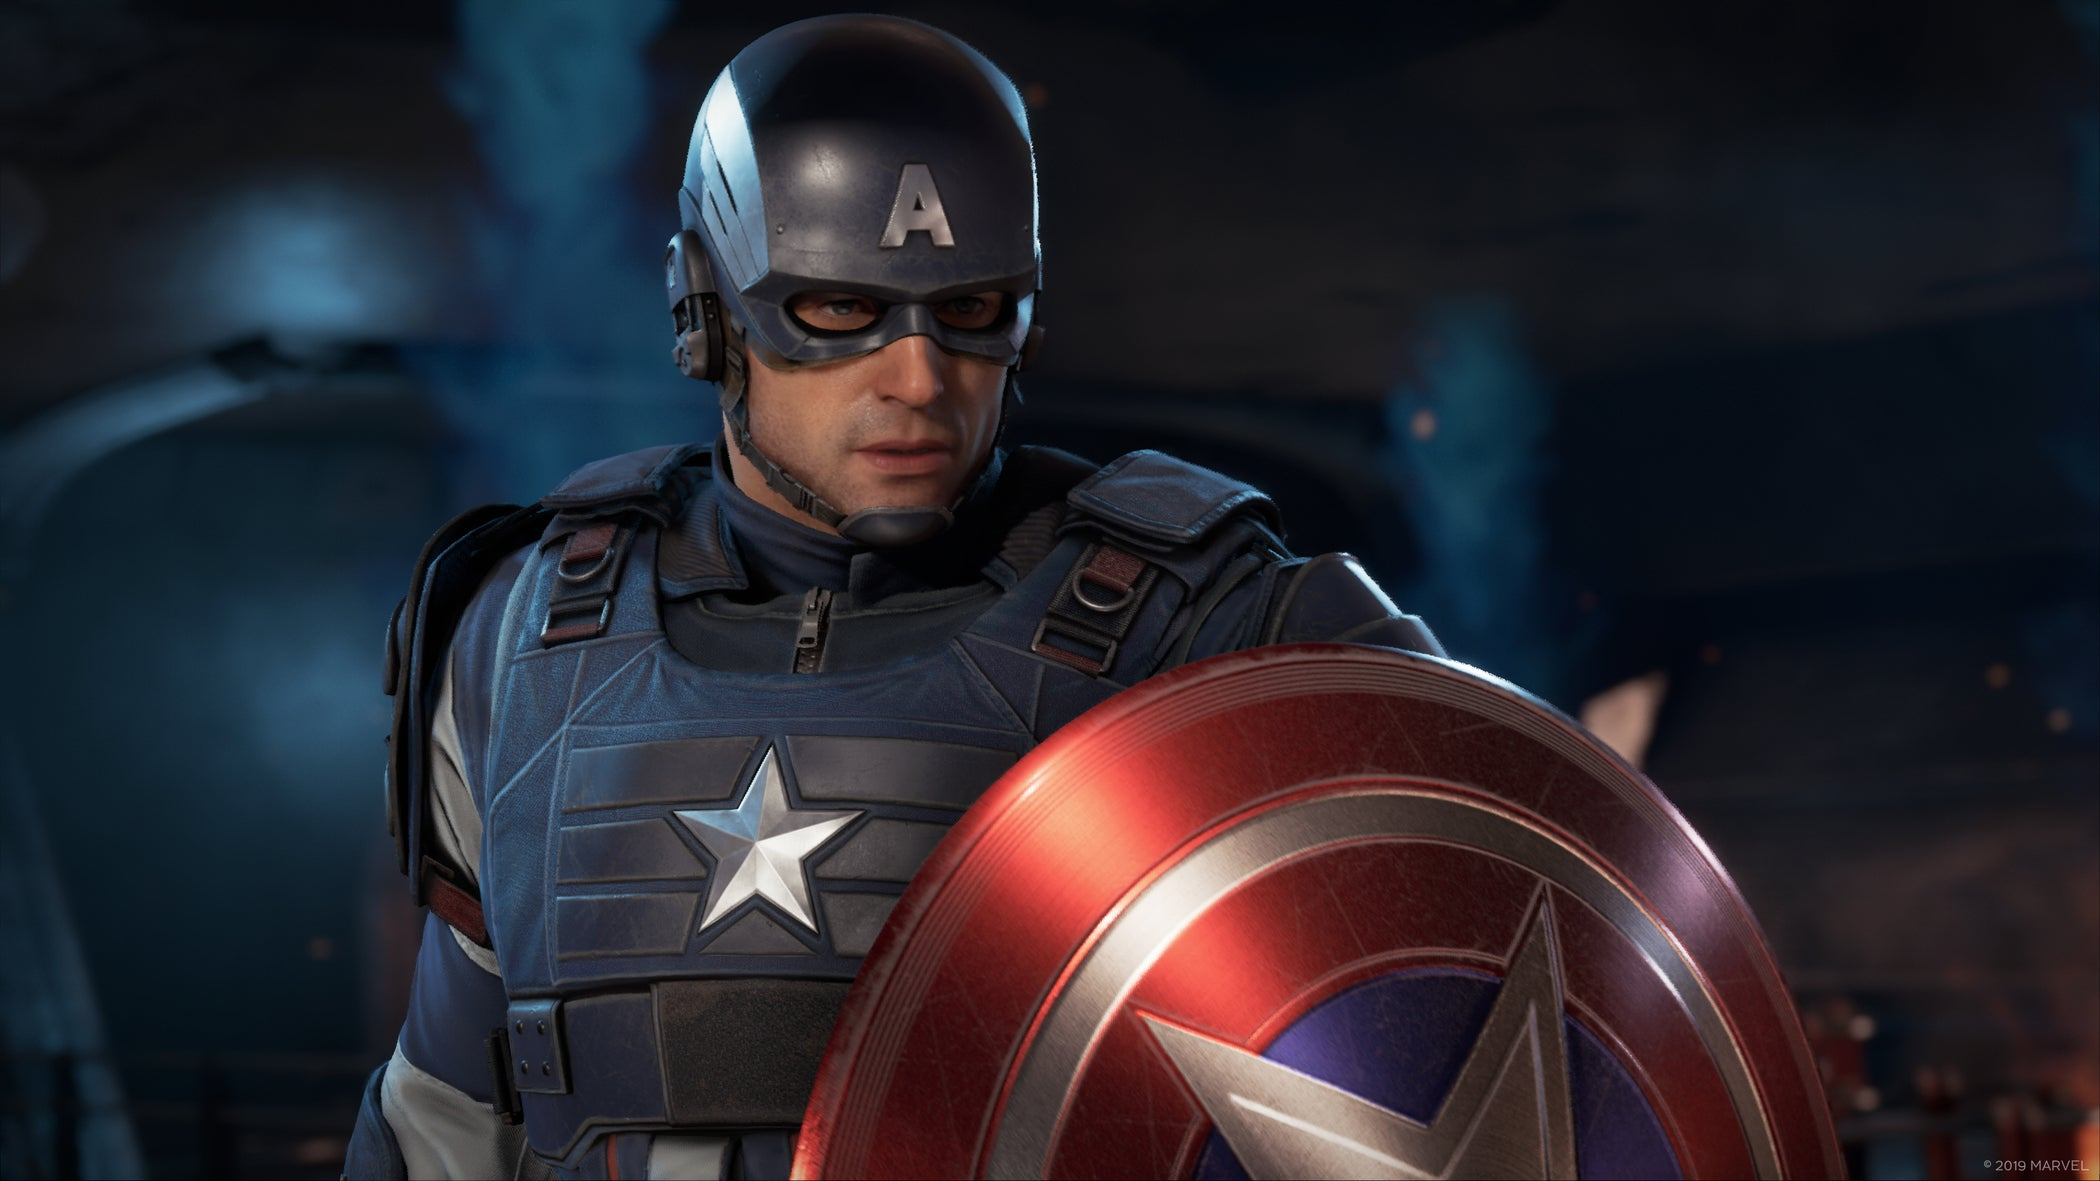 Marvel's Avengers seemingly has graphics modes on PS5, but not Xbox - Video Games Chronicle